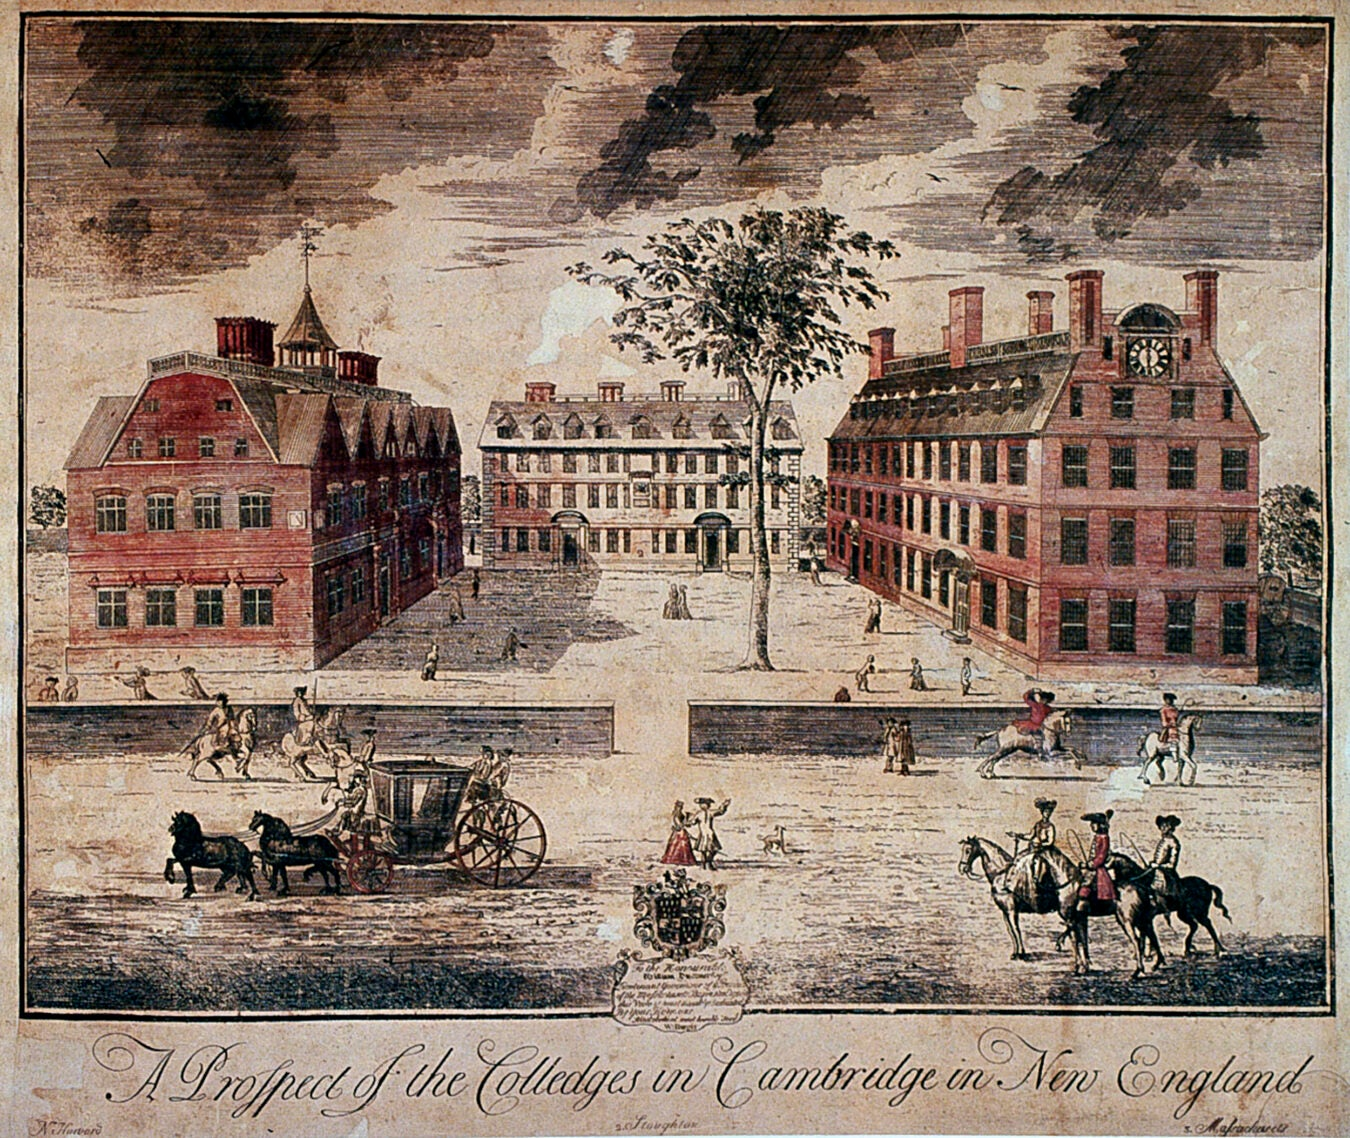 A Prospect of the Colledges in Cambridge in New England, William Burgis, 1726.